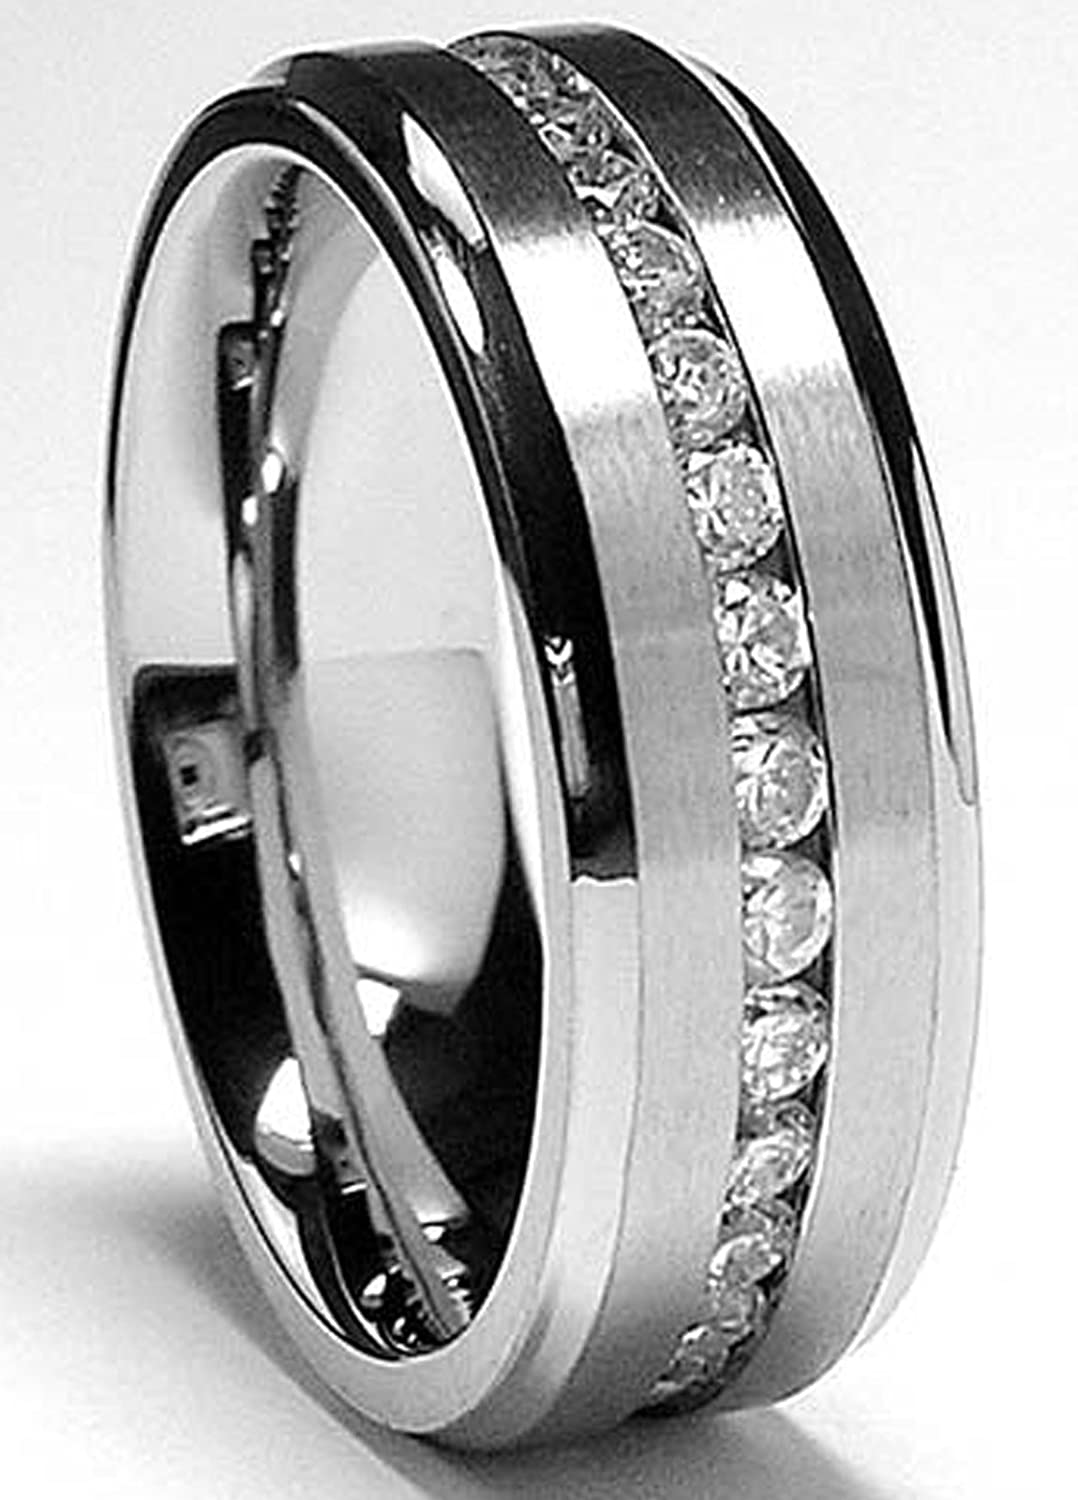 Metal Masters Co. 7MM Men's Eternity Titanium Ring Wedding Band with Cubic Zirconia CZ sizes 5 to 13 TIR11023